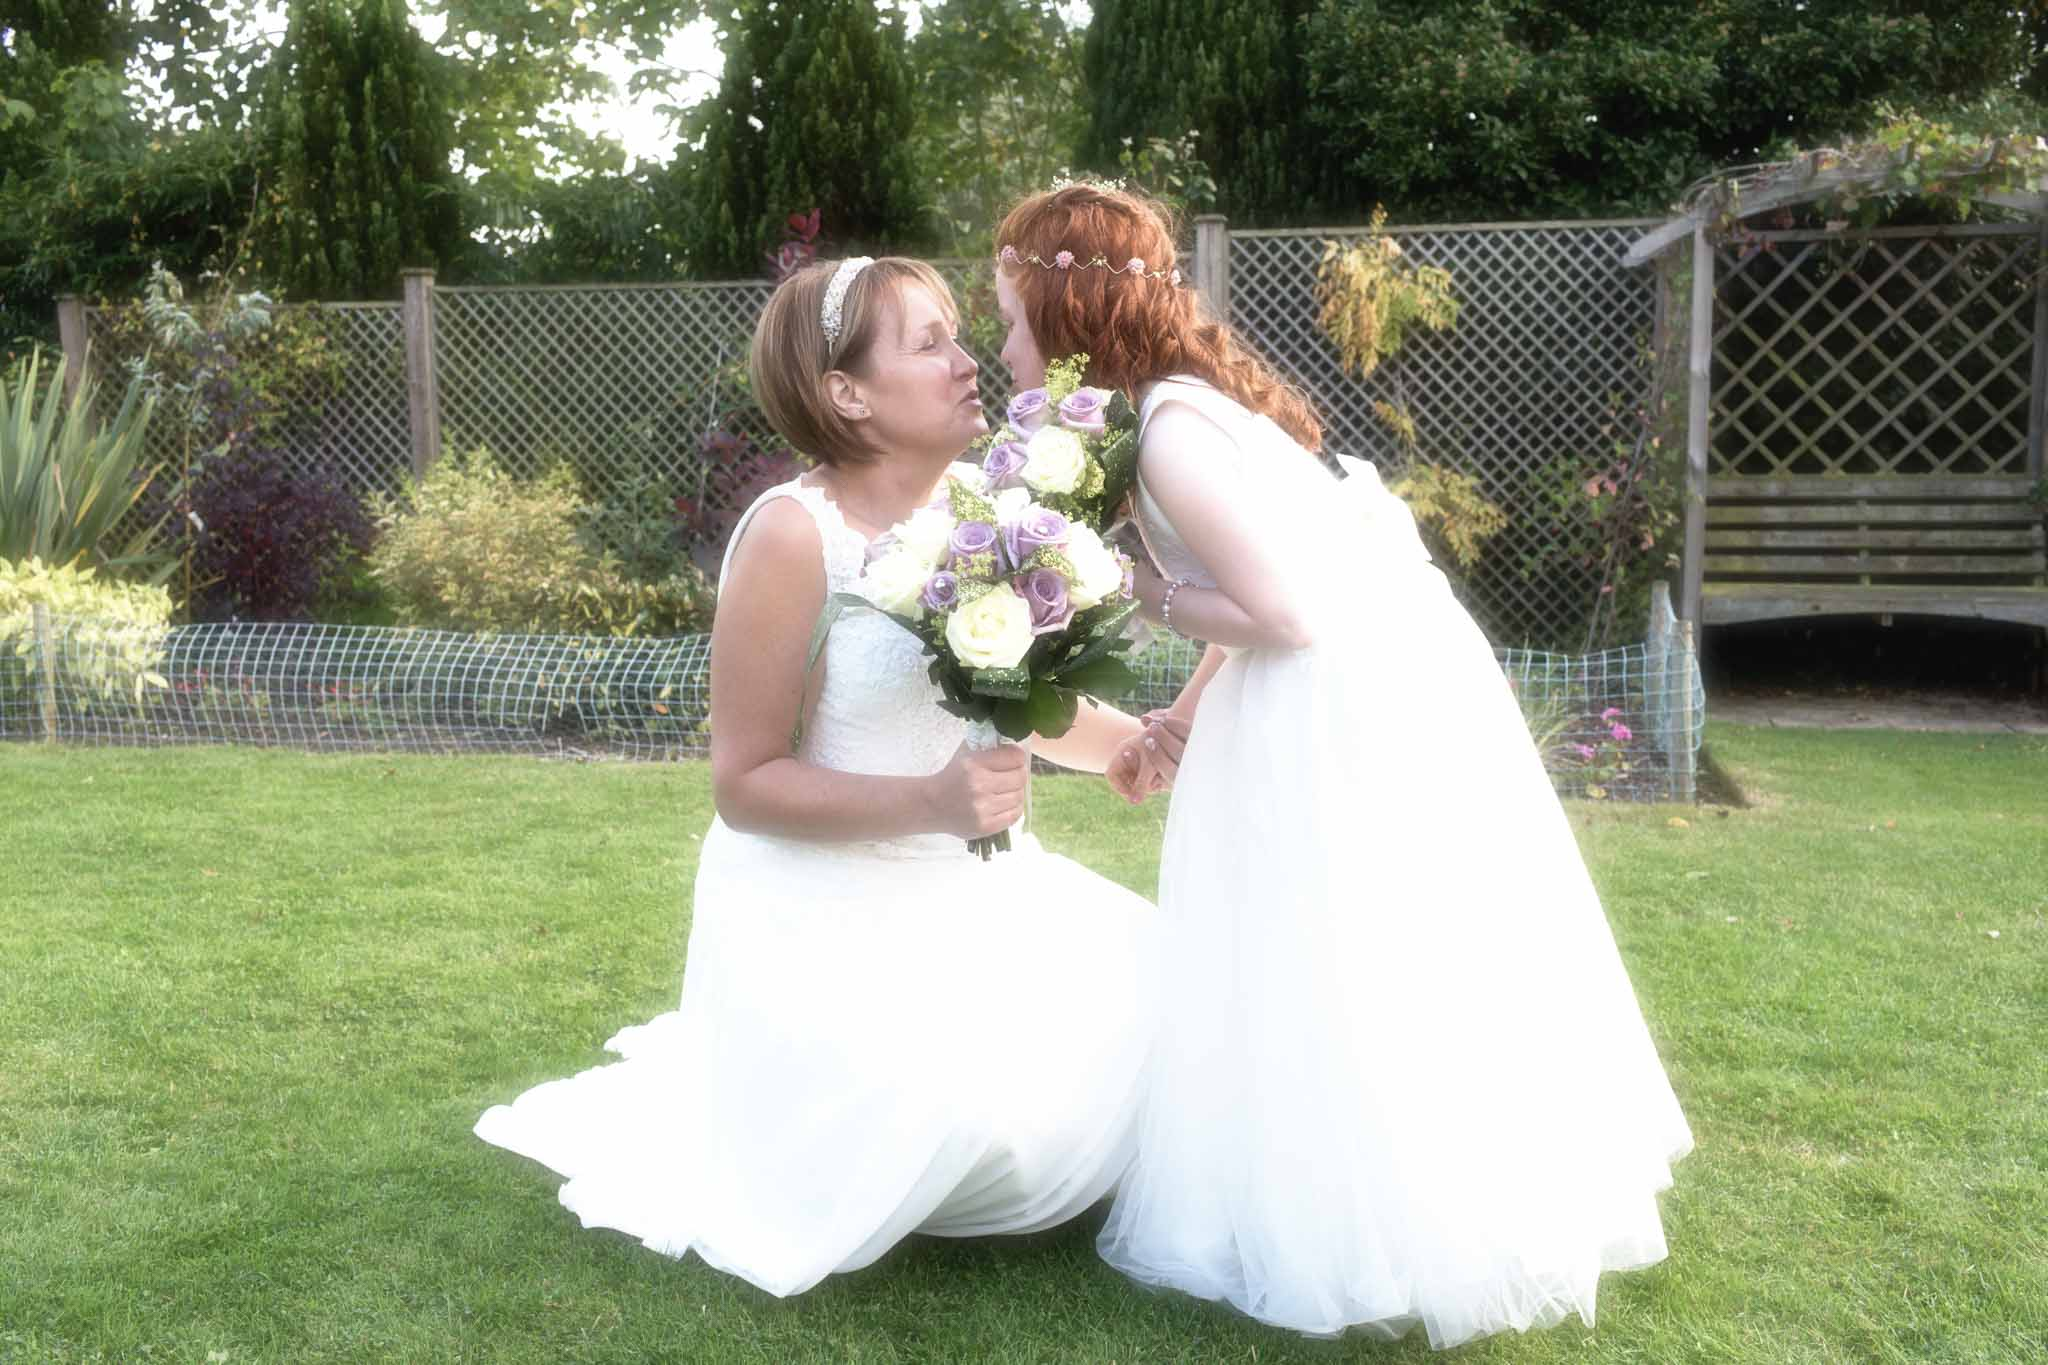 bride holding her bouquet and kneeling down on a grass lawn to kiss her daughter